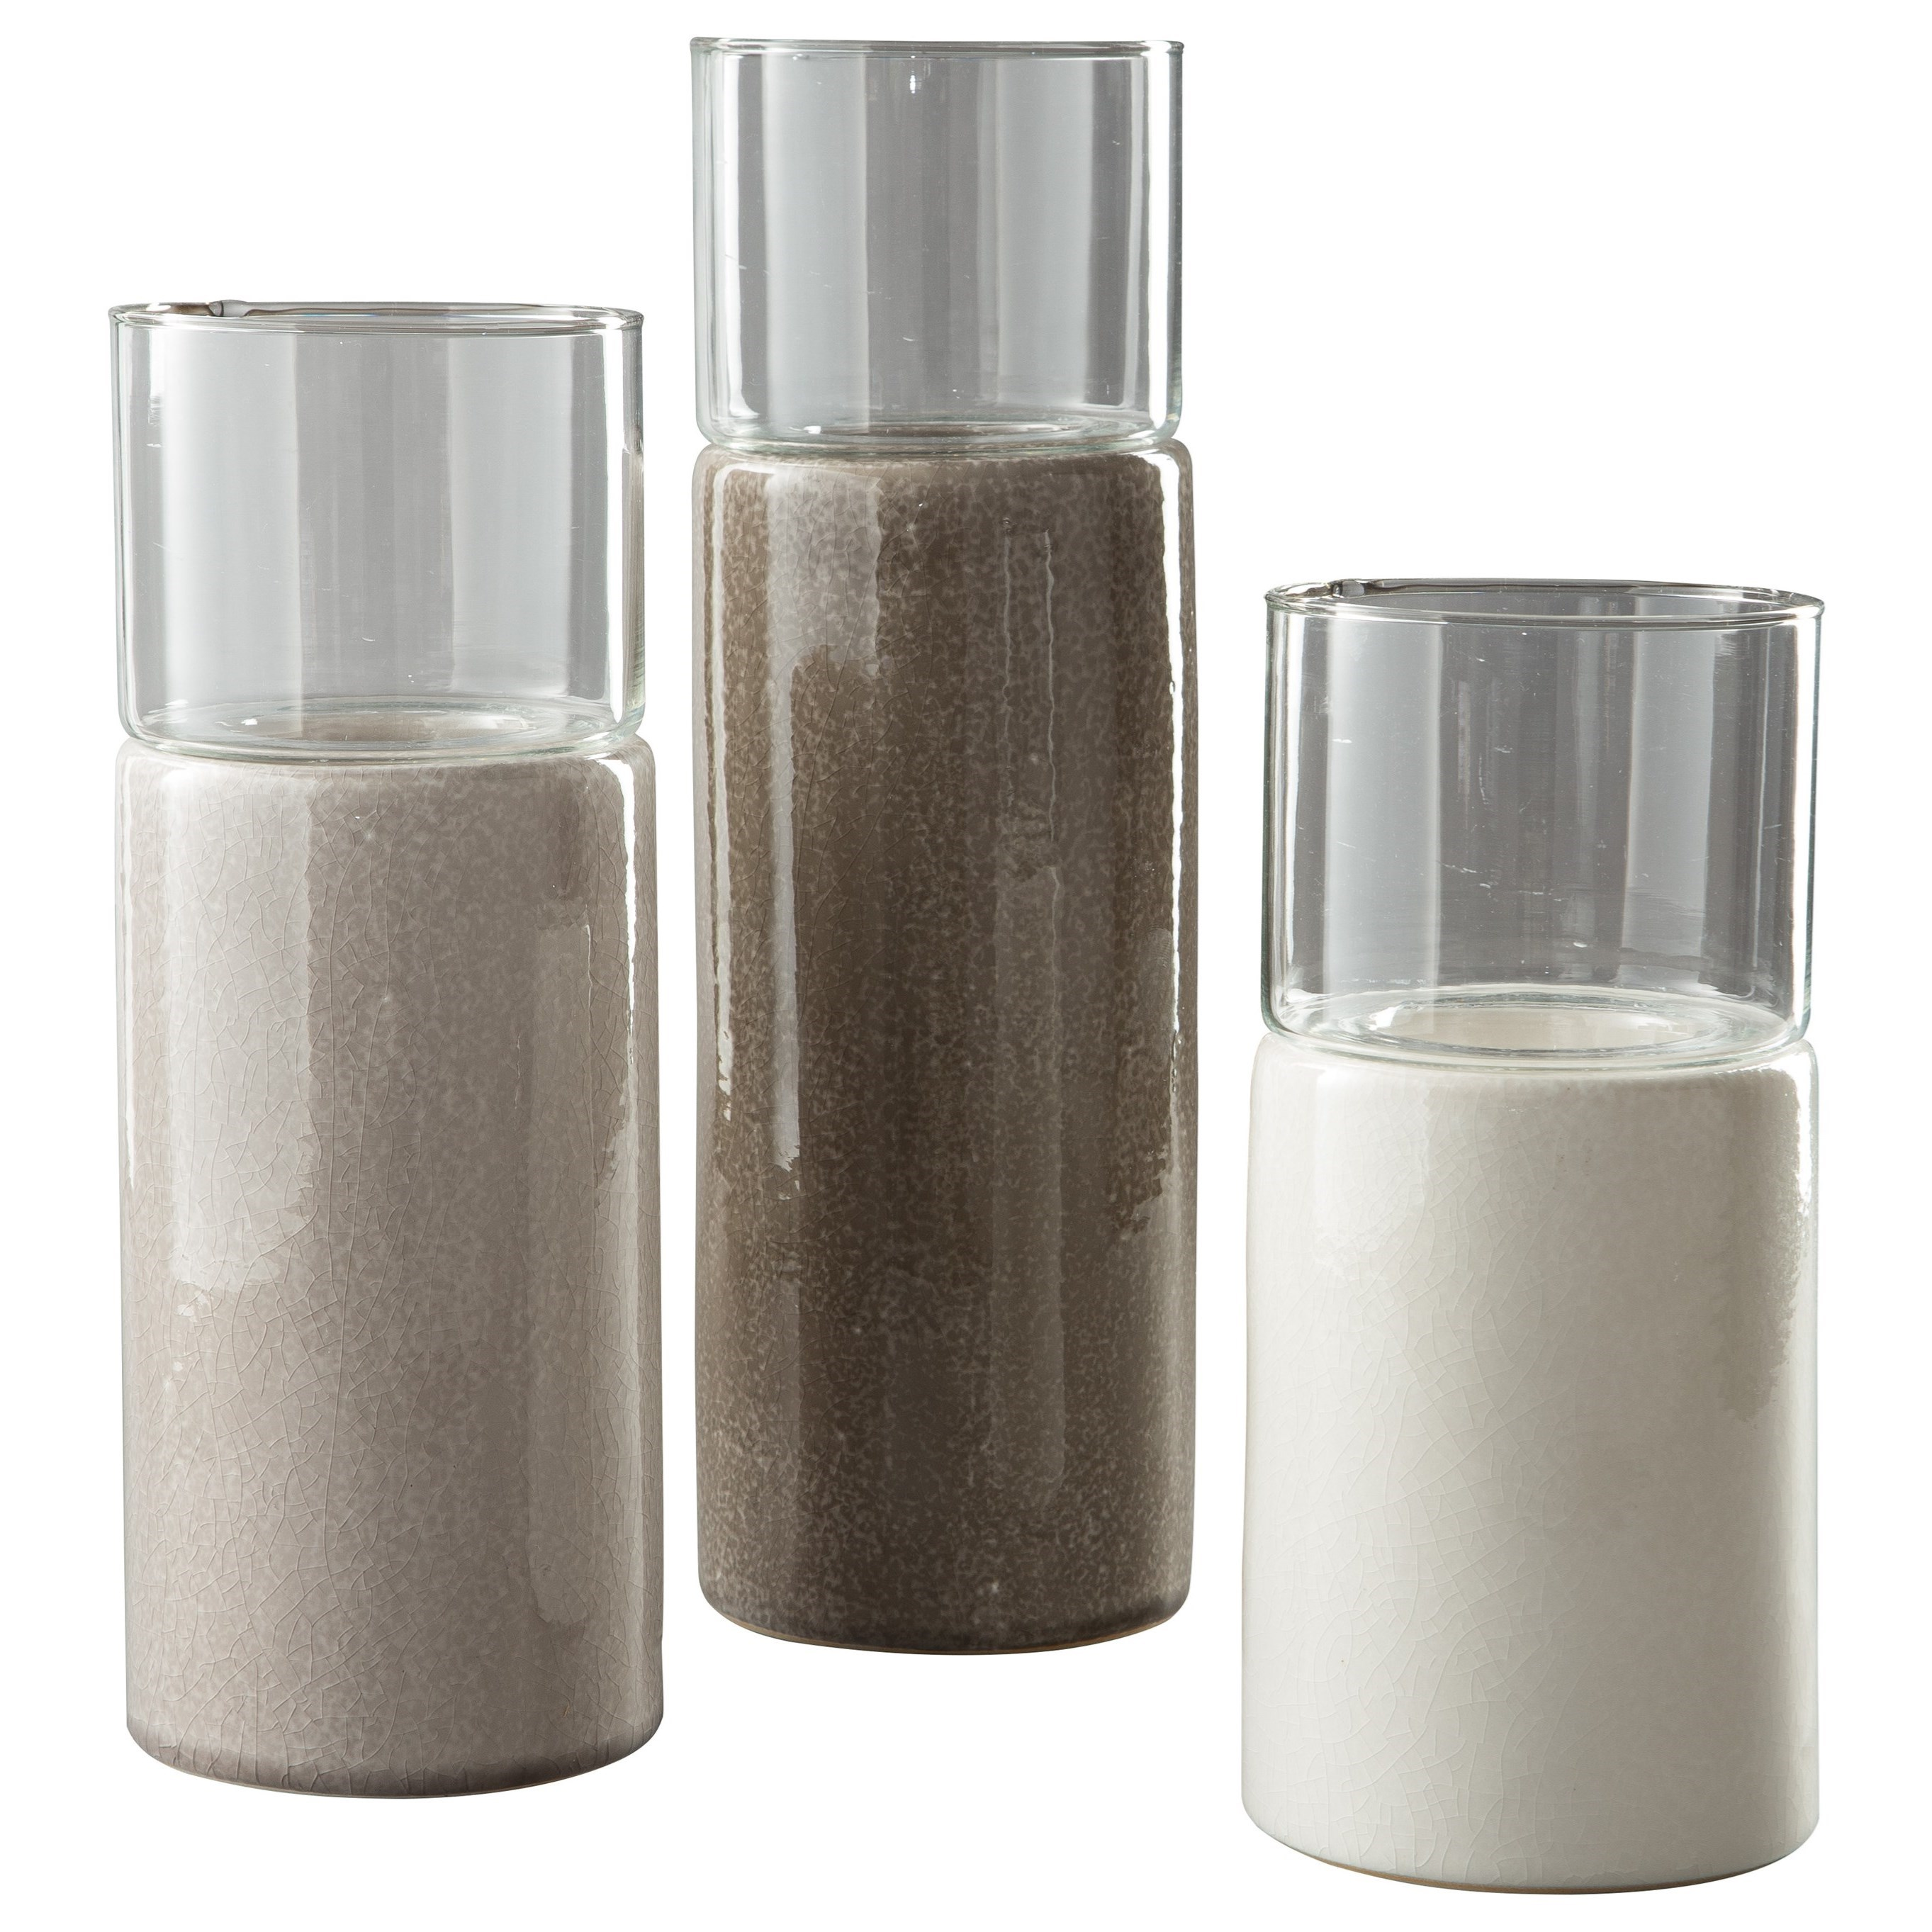 Accents Deus Gray/White/Brown Candle Holder Set by Signature Design by Ashley at Lynn's Furniture & Mattress